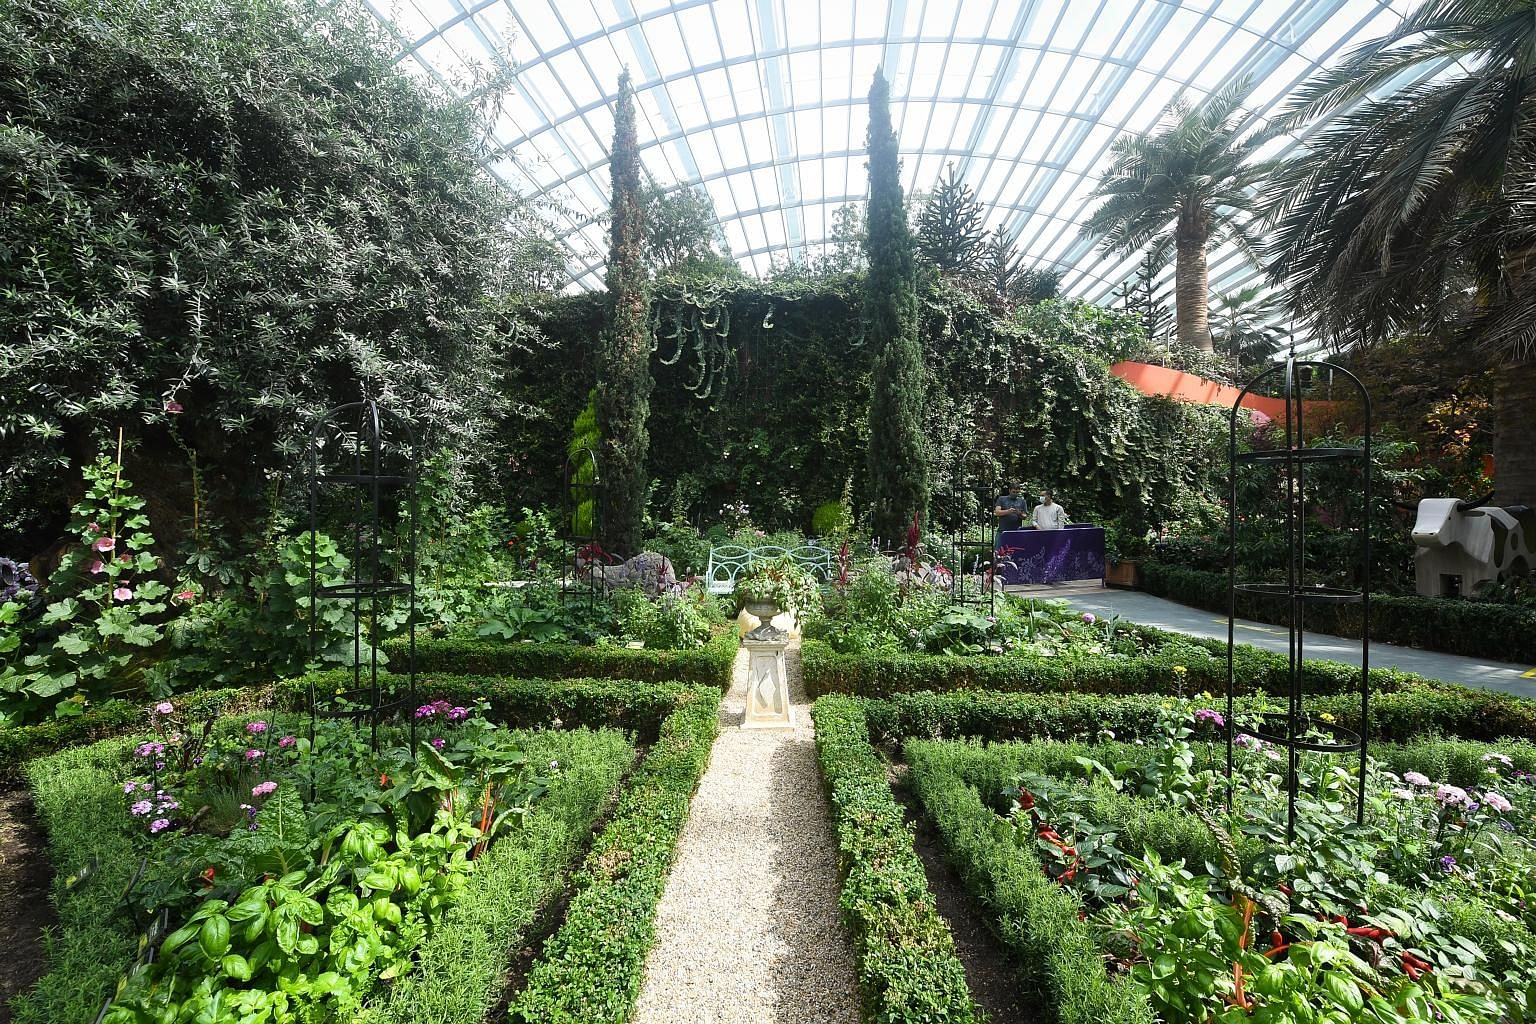 Inspired by the renowned Potager of the 16th-century Chateau Villandry in France, the Edible Garden (above) at the Flower Dome will feature vegetables and herbs. The dome will also showcase European blooms – such as foxgloves – that Gardens by the Bay has